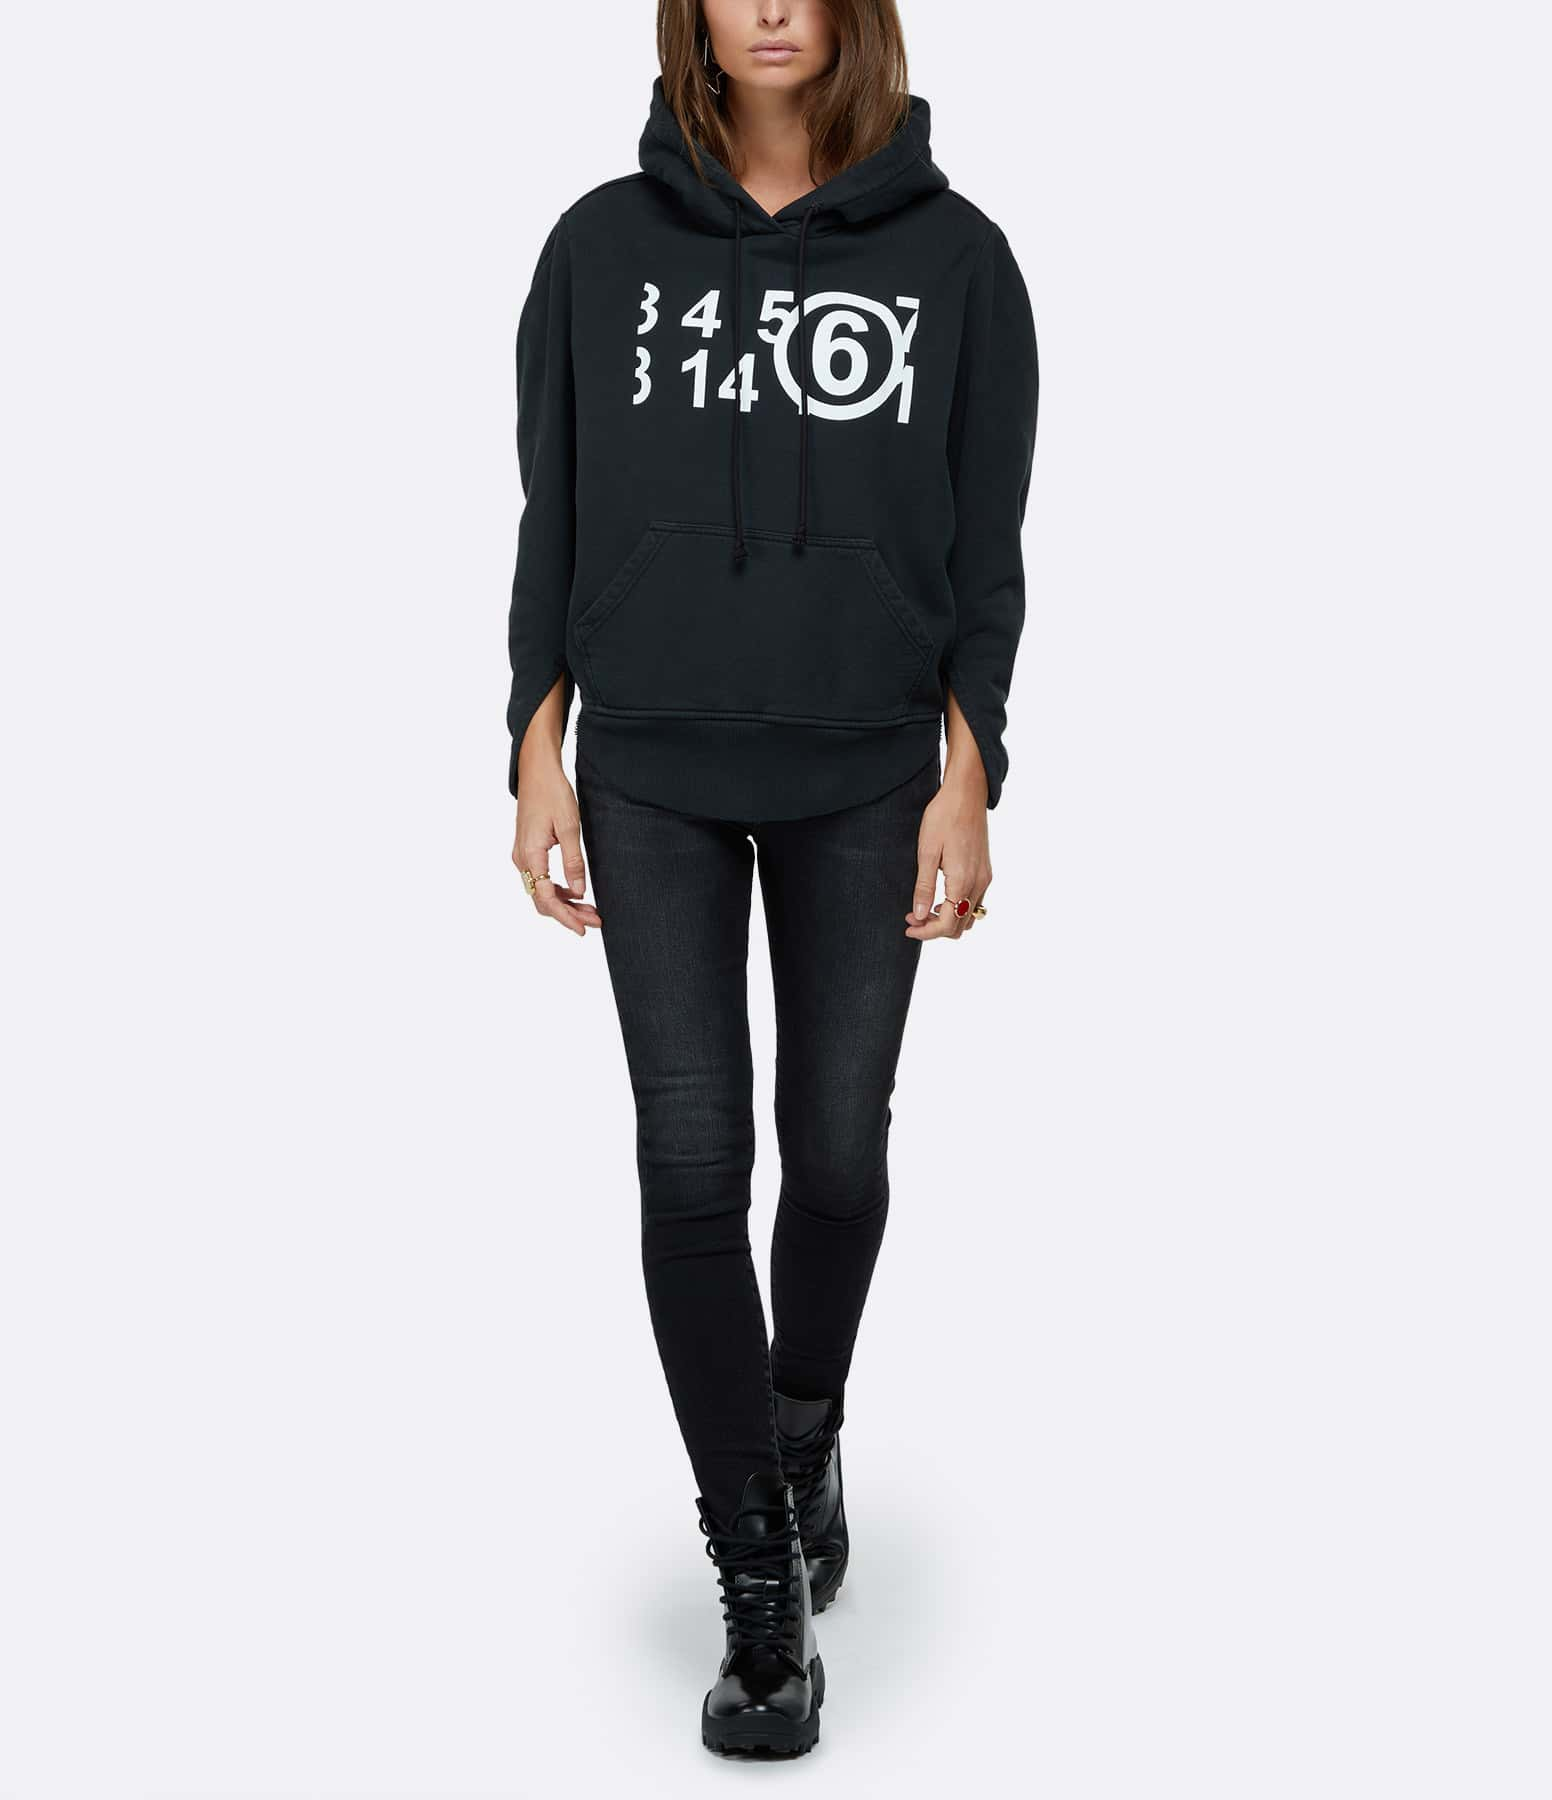 MM6 MAISON MARGIELA - Sweatshirt Oversize Noir, Collection Studio